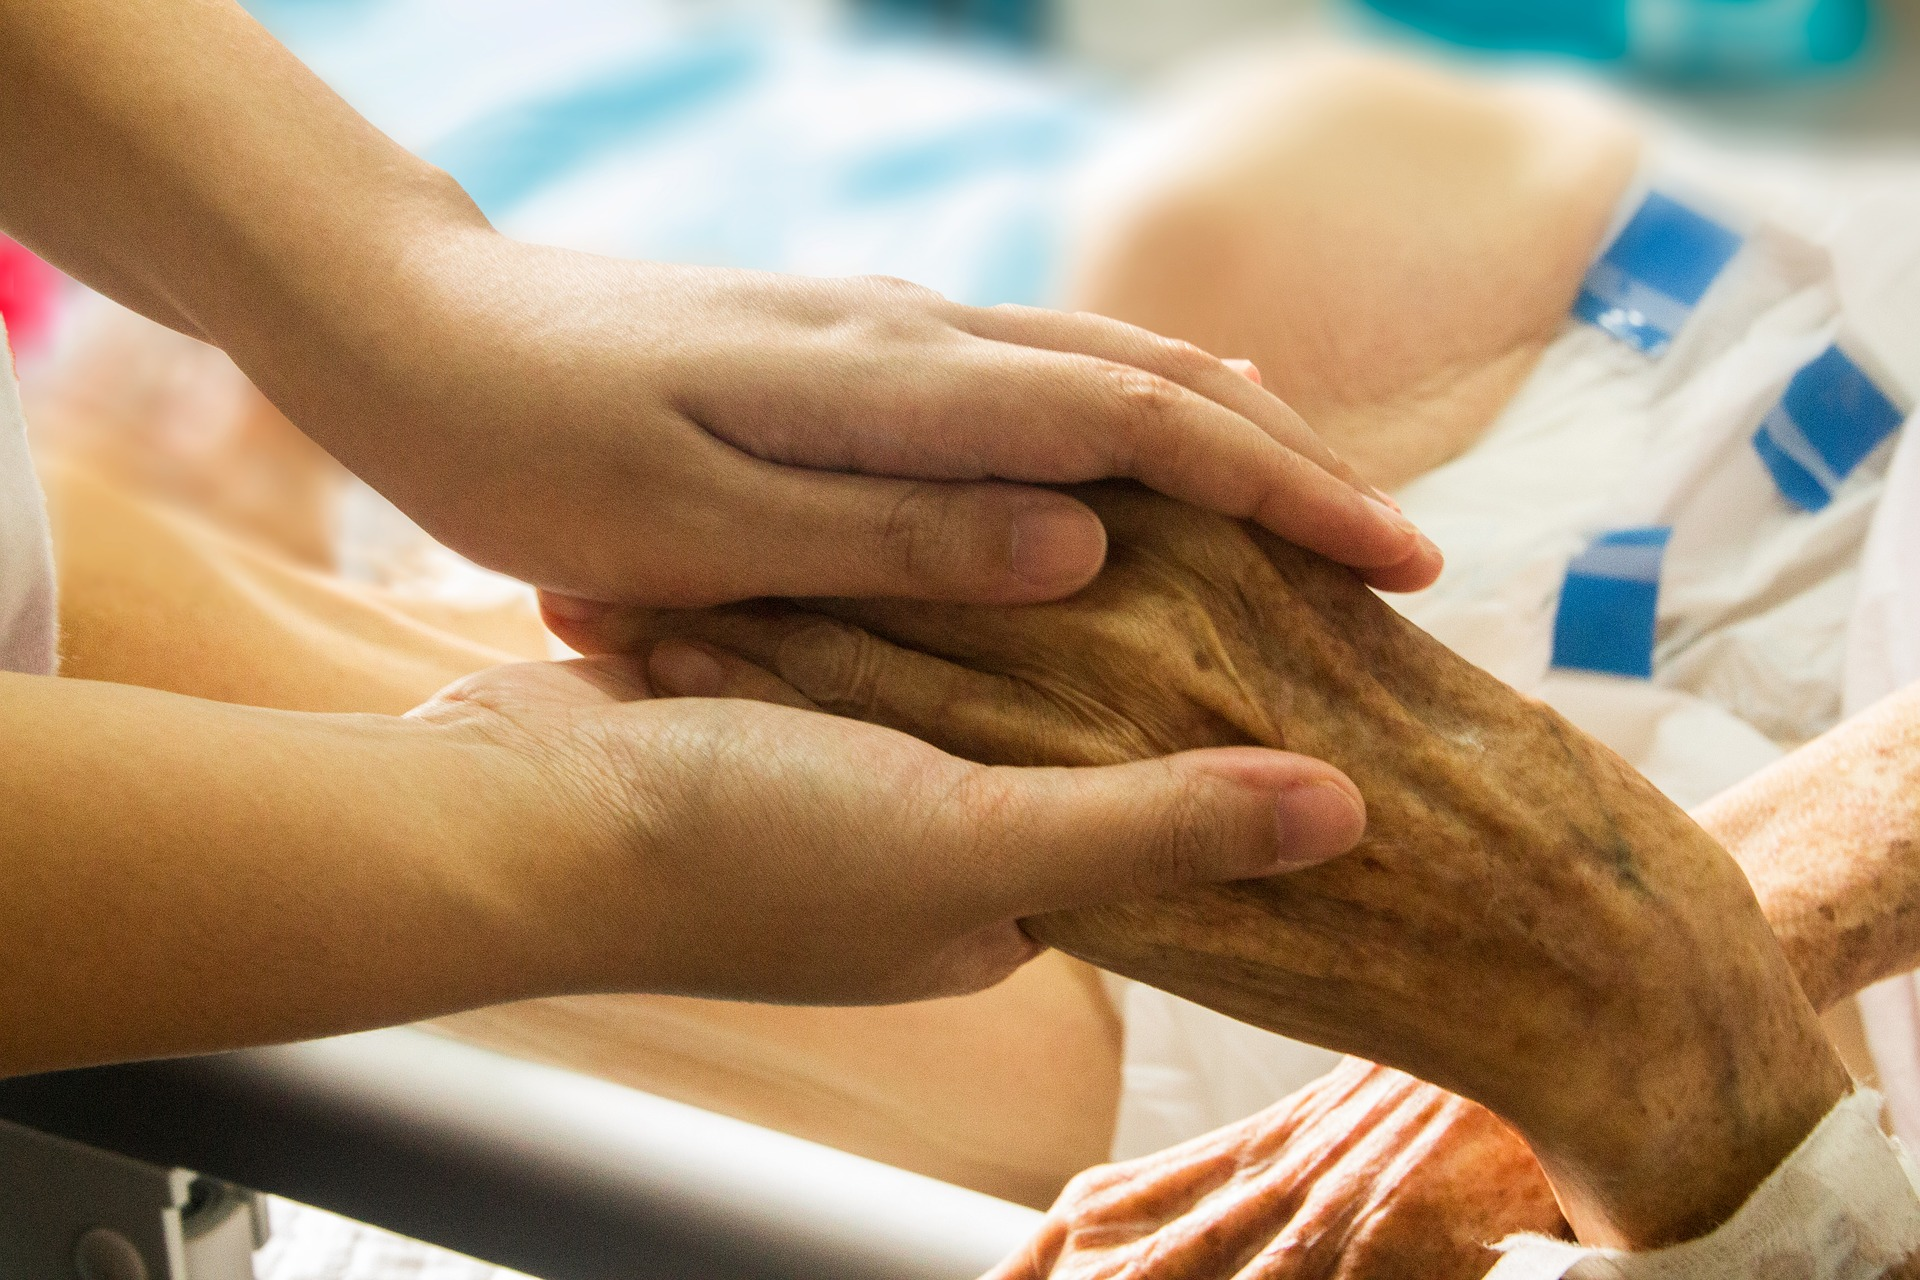 When is hospice care required post image - Kenwood Care in Laurel, MD